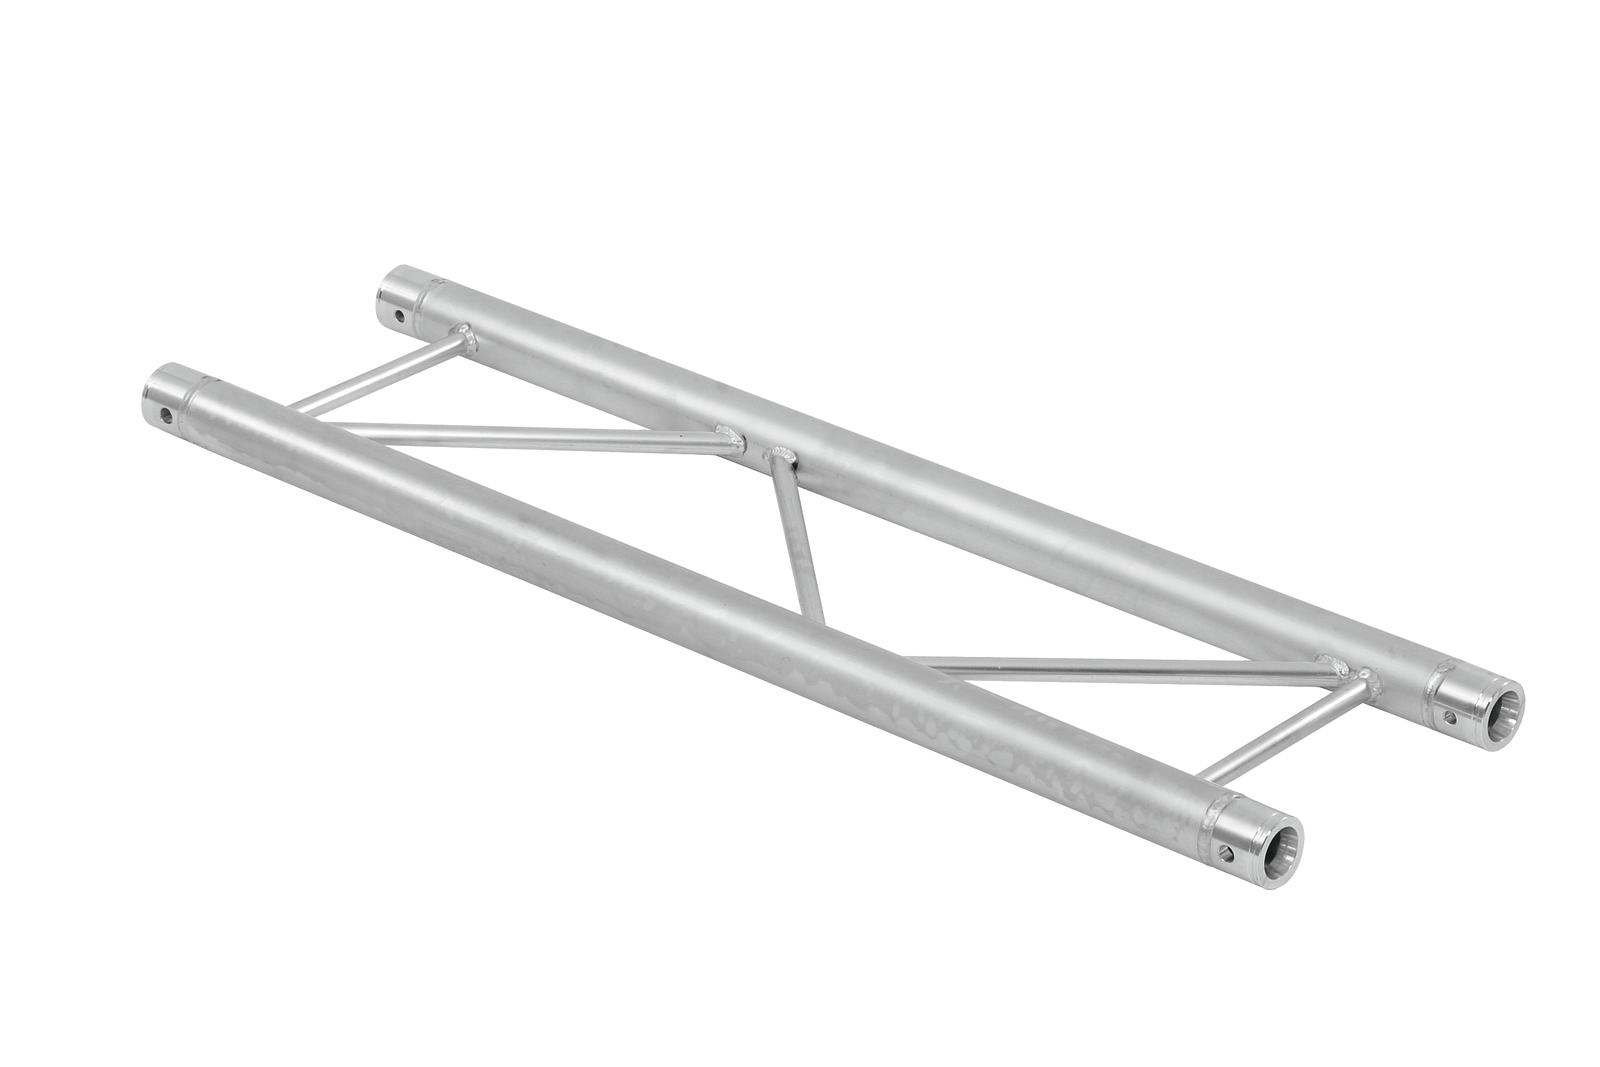 ALUTRUSS BILOCK E-GL22 500 a 2 vie traverse